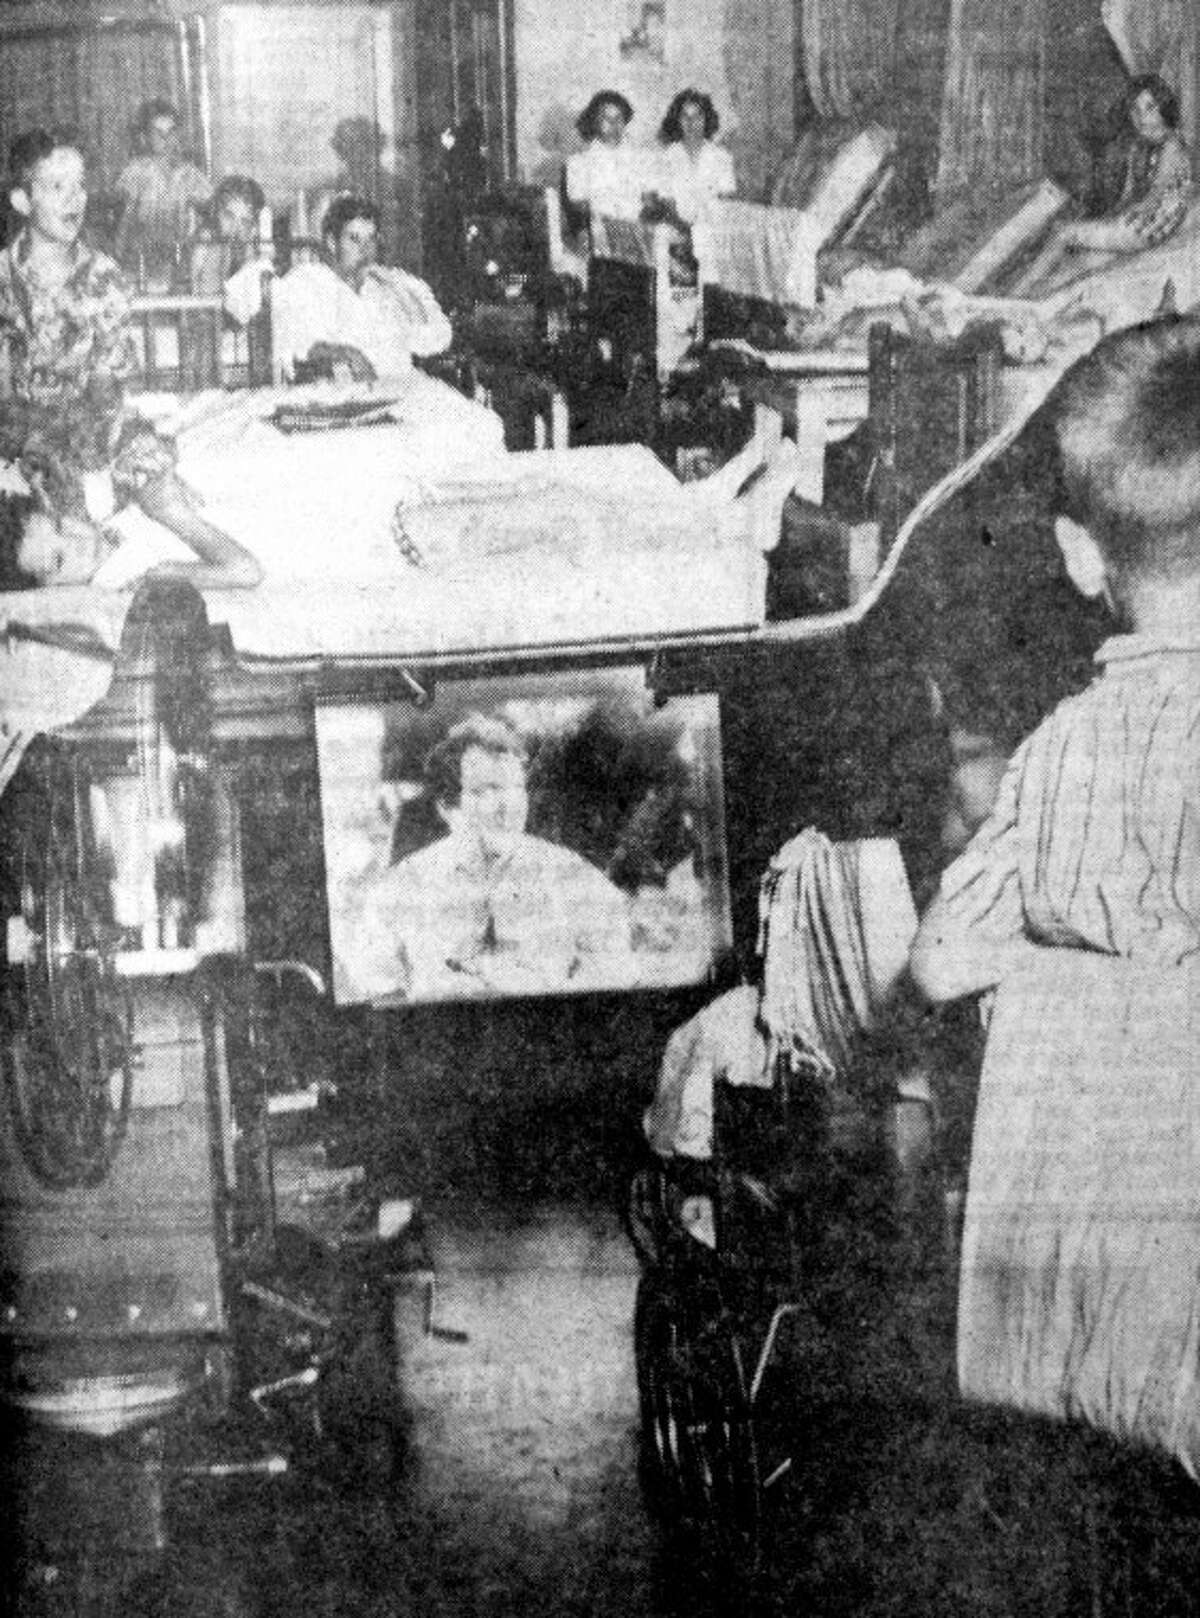 """In 1952, patients in the West Texas Polio Center in Plainview were able to watch two movies a week, thanks to the efforts of """"Bowser's Little Culture Club."""" Originated by polio victim Perry Bowser and Herald Sports Editor Bob Hilburn, the Culture Club also raised funds for an iron lung."""